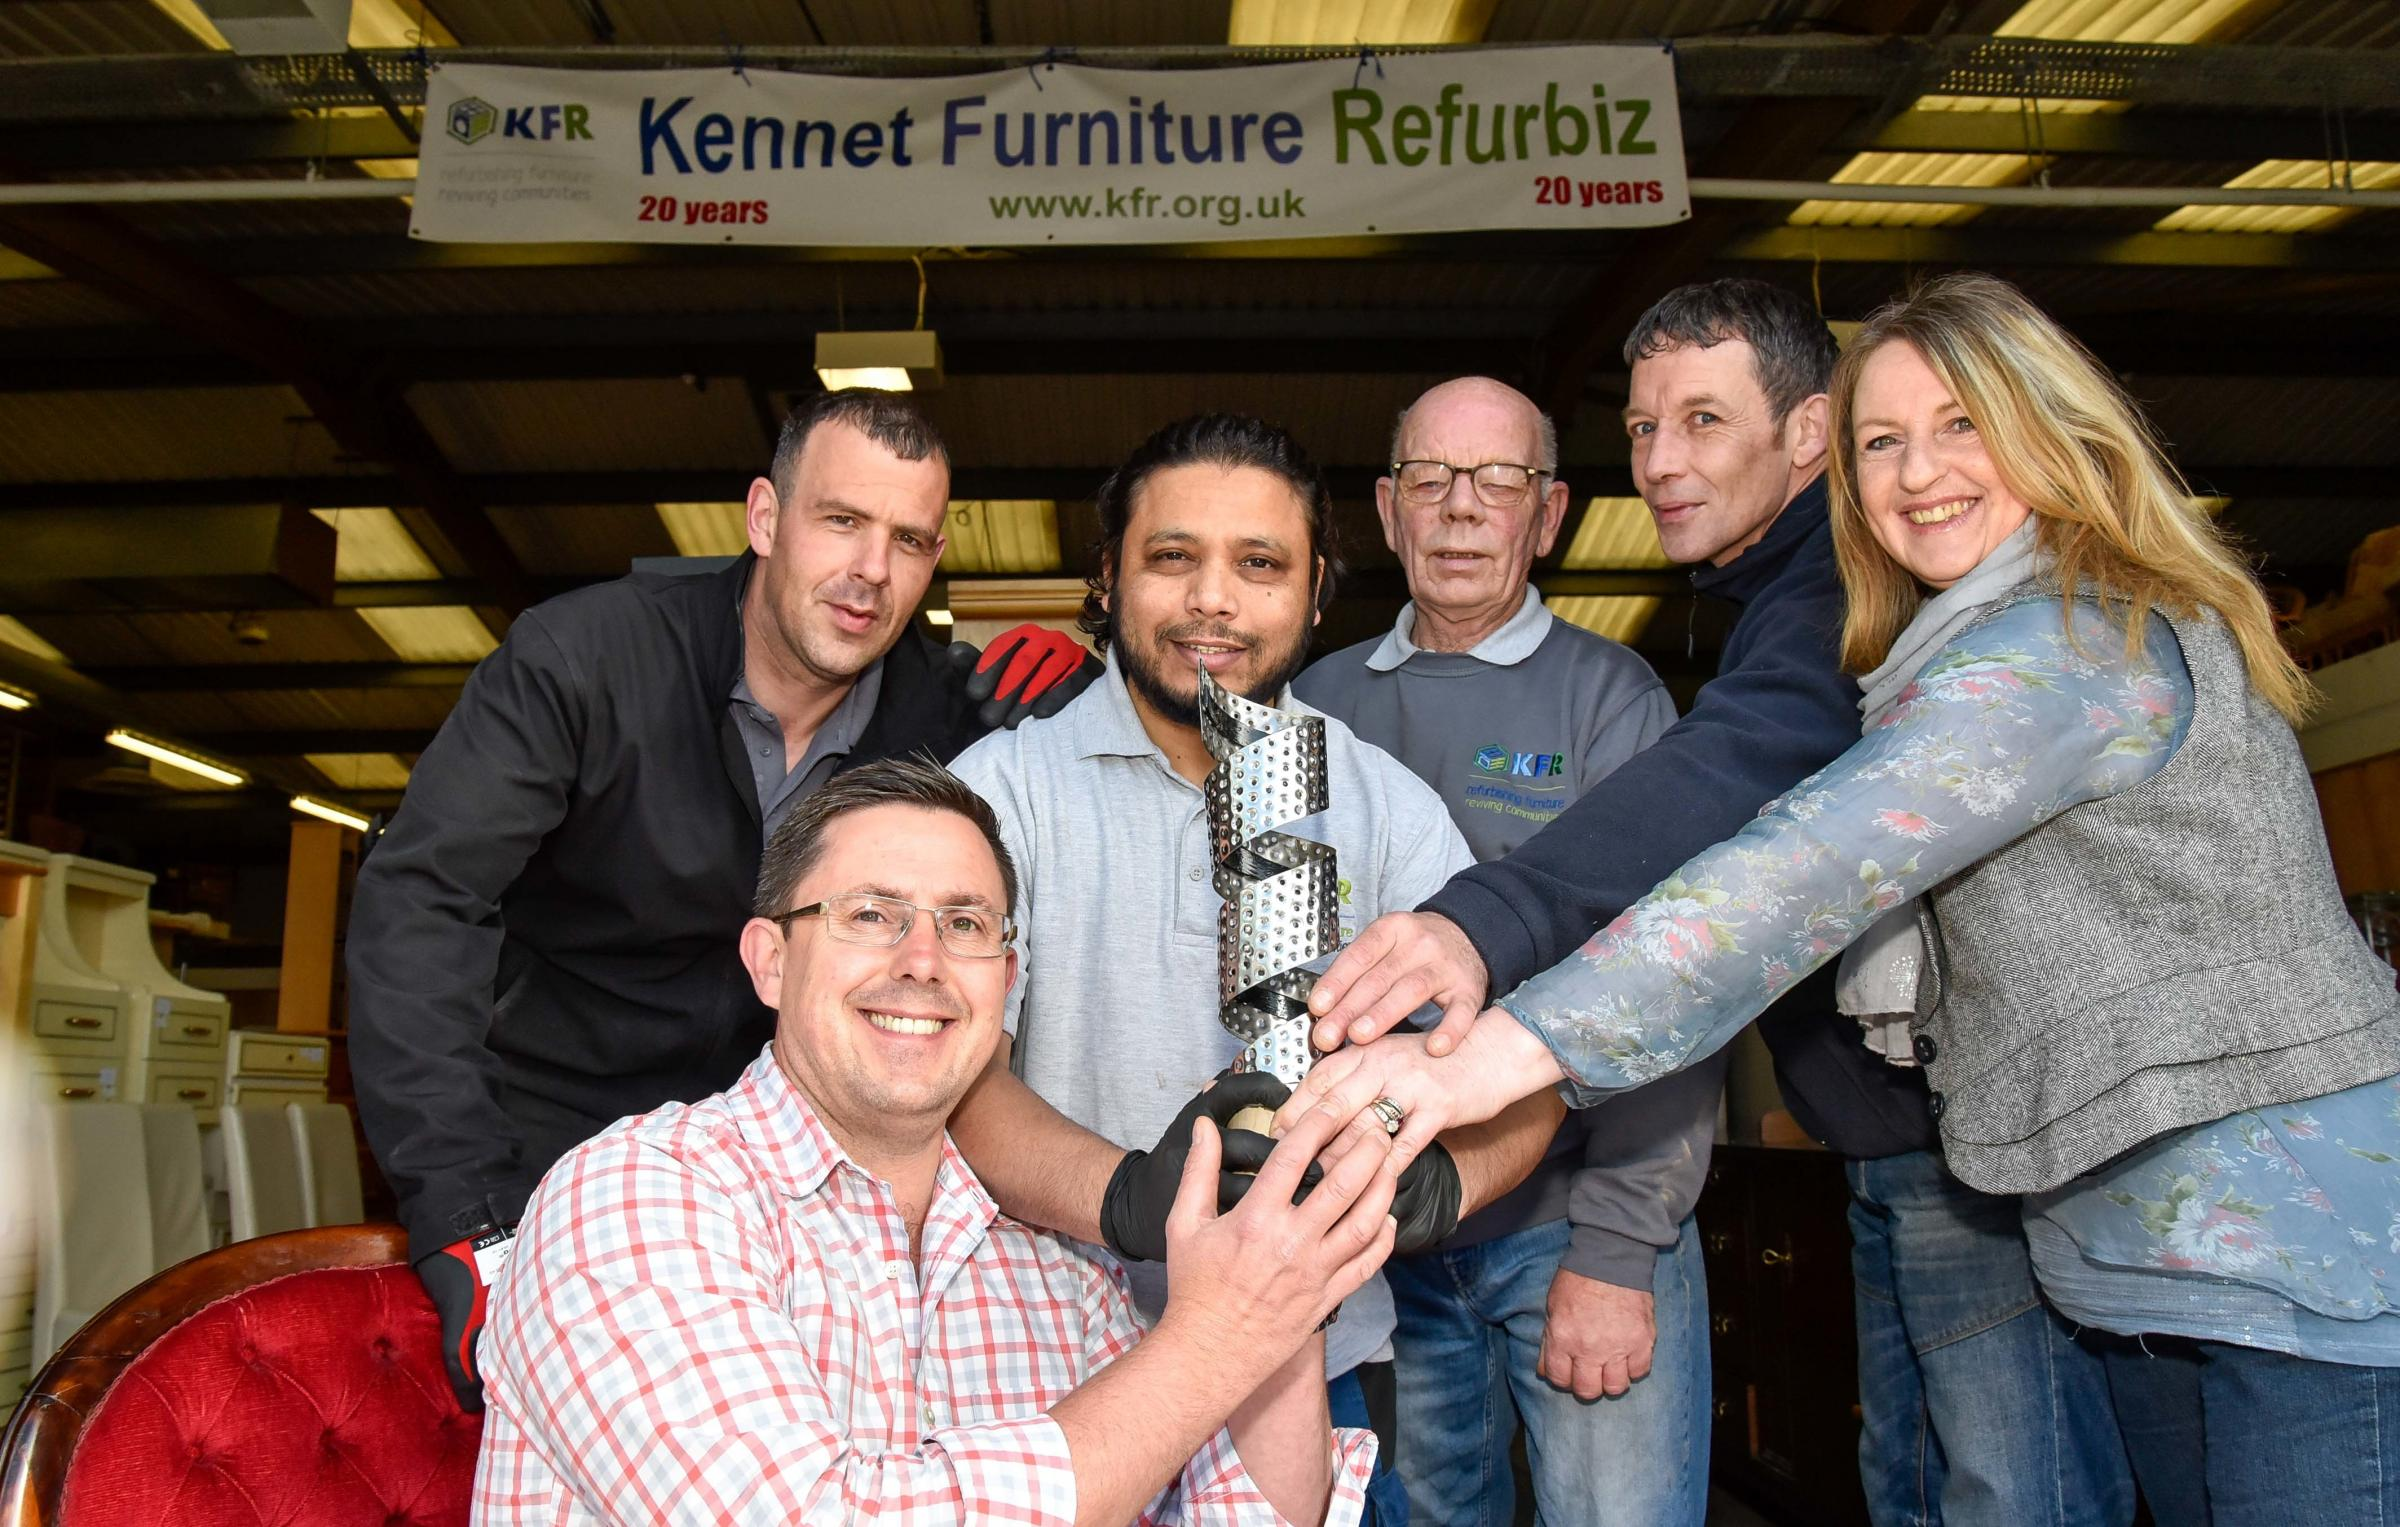 Kennet Furniture Refurbiz operations manager Daniel Thompson with staff  Shaun Salat, Samad Abdul, Keith Brown, Darren Smith and Frances Matthews at their depot in Devizes  with the  Reuse Organisation of the Year award  2019.   Photo by www.gphillipsphot